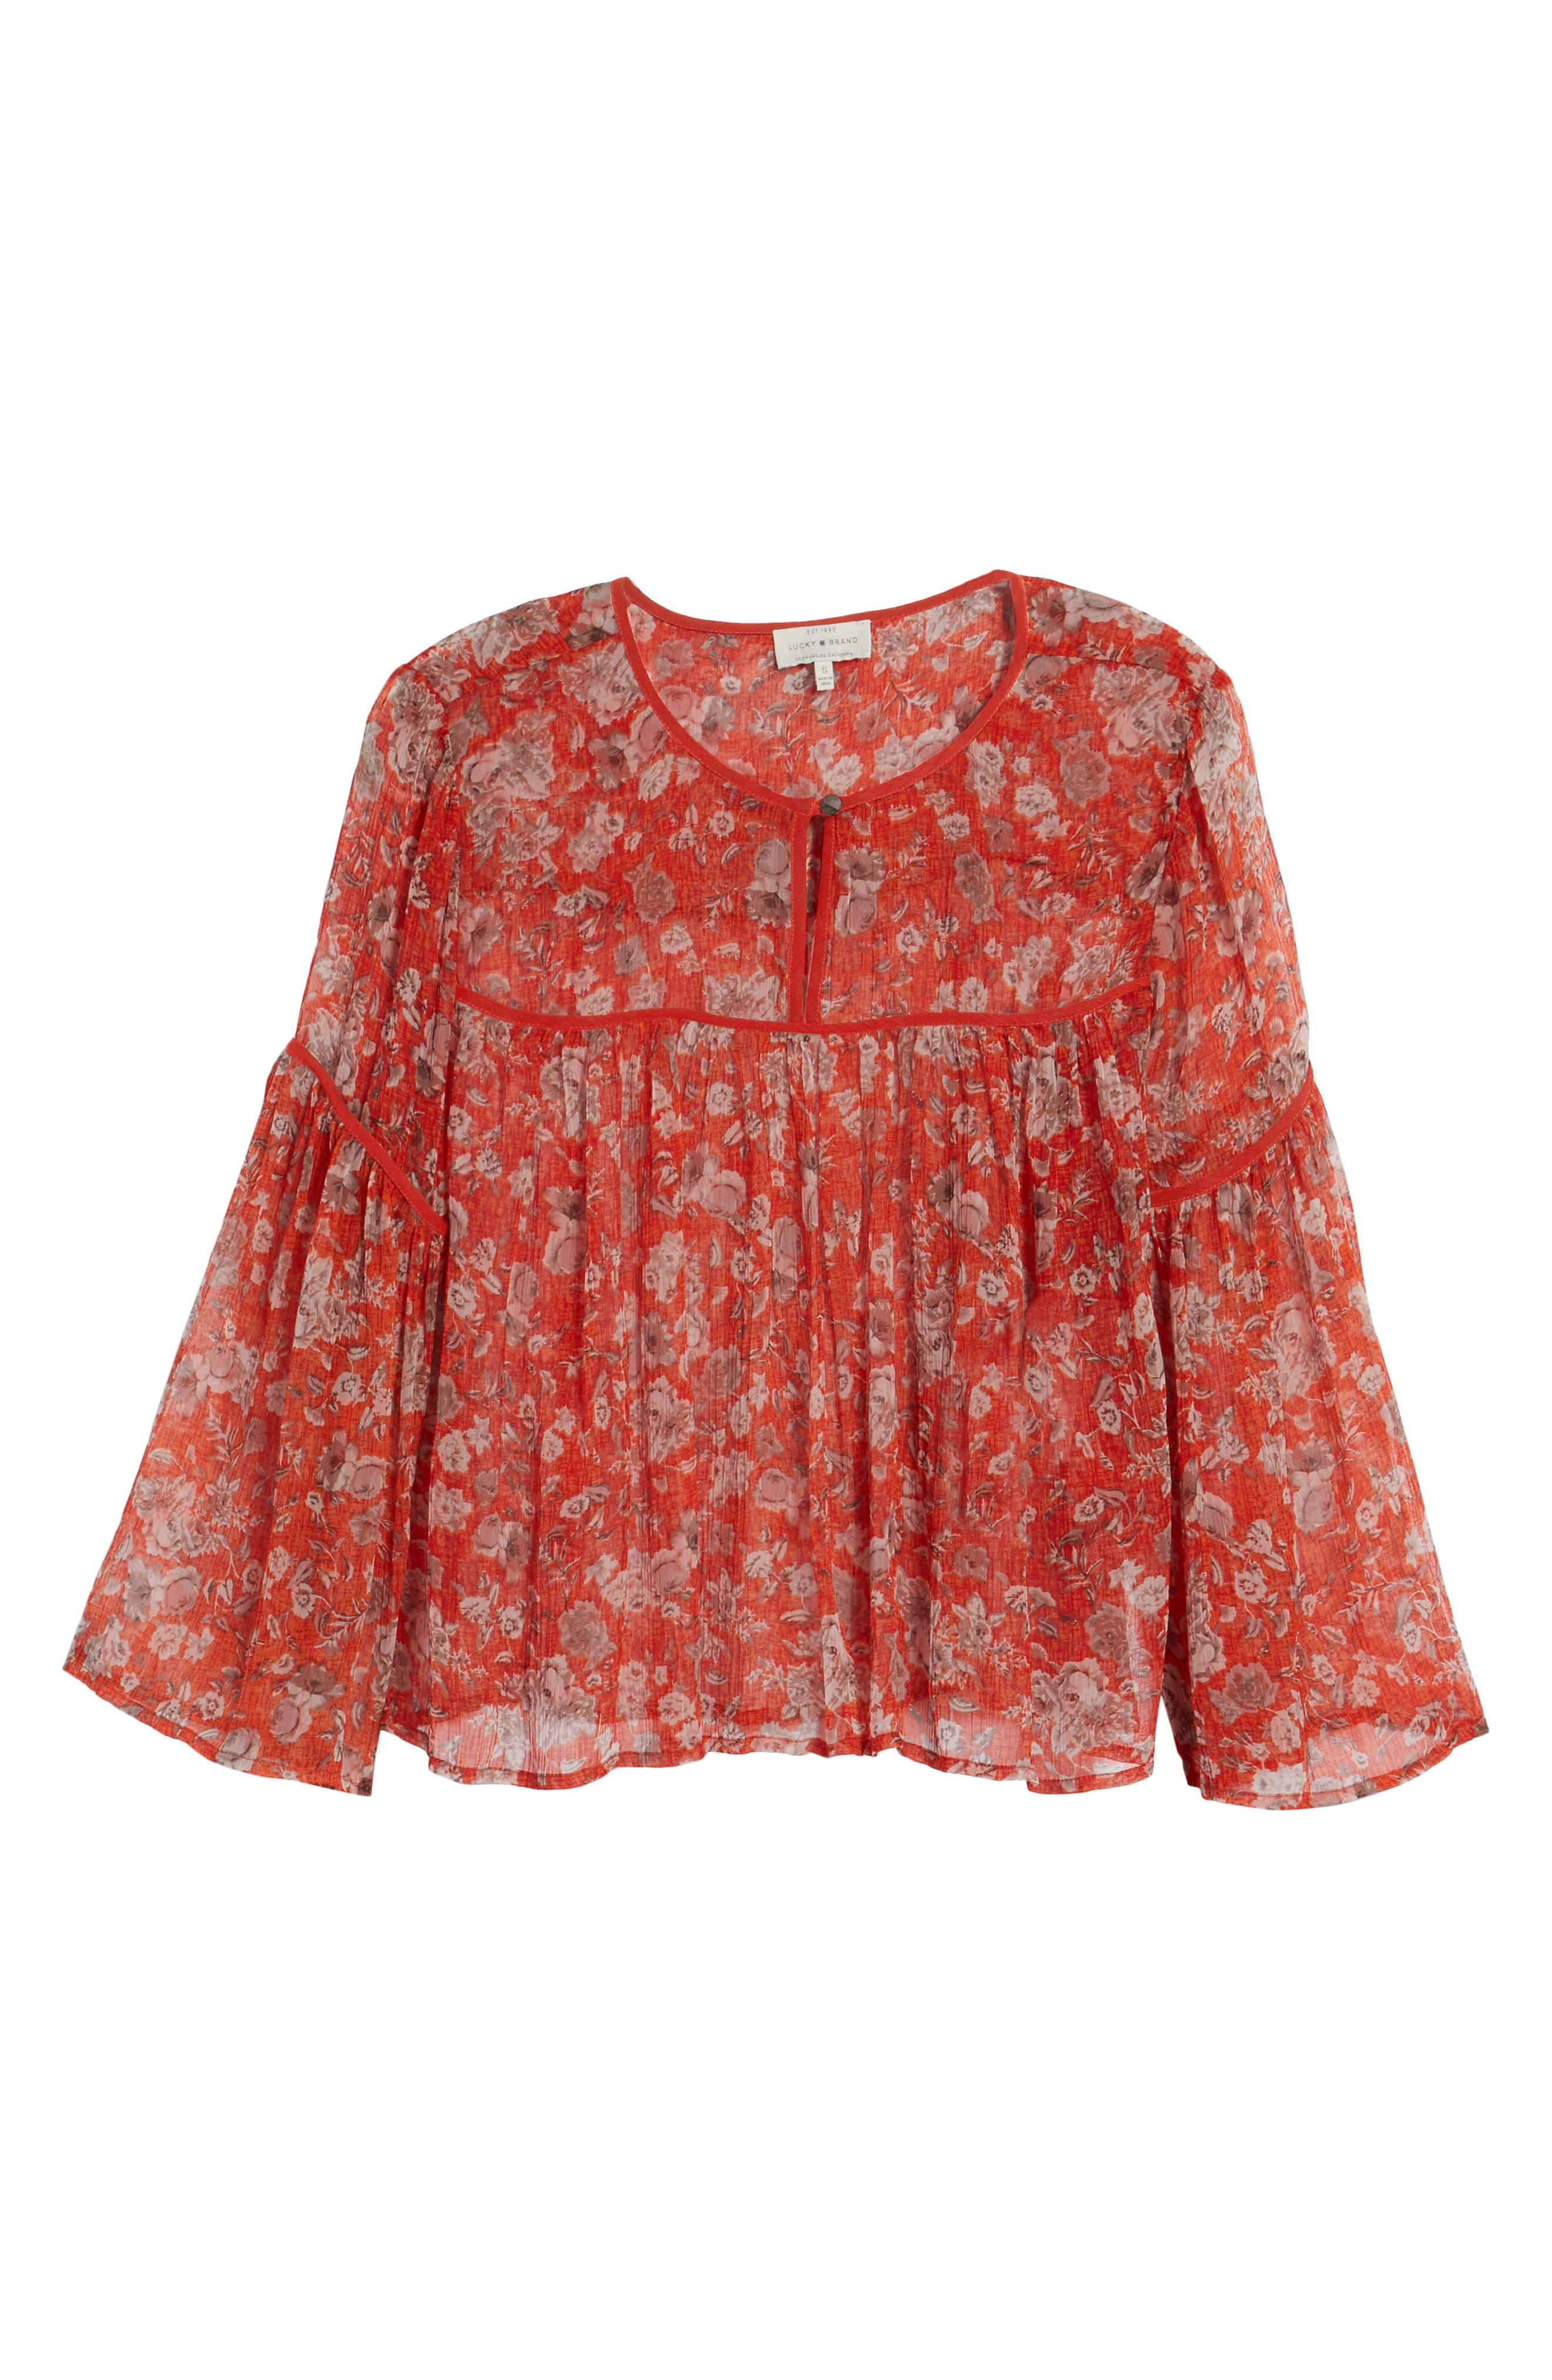 Floral Print Bell Sleeve Top,                             Alternate thumbnail 6, color,                             Red Multi